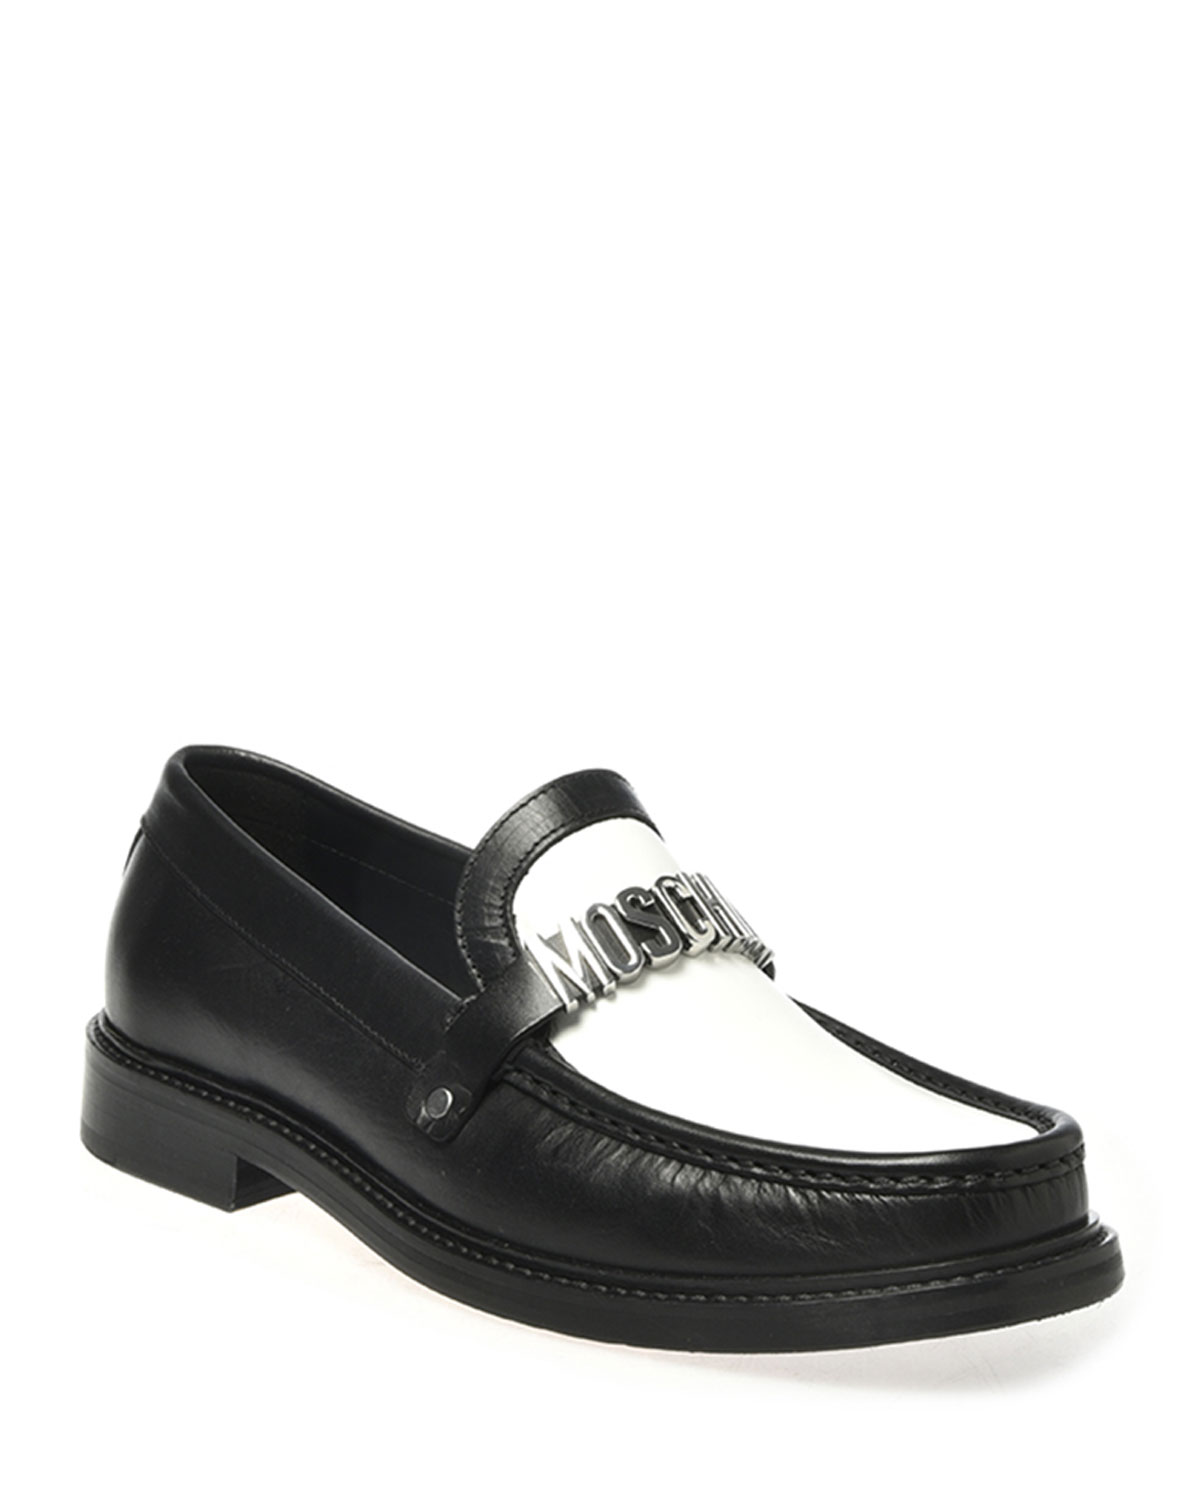 Men's Two-Tone Leather Logo Loafers